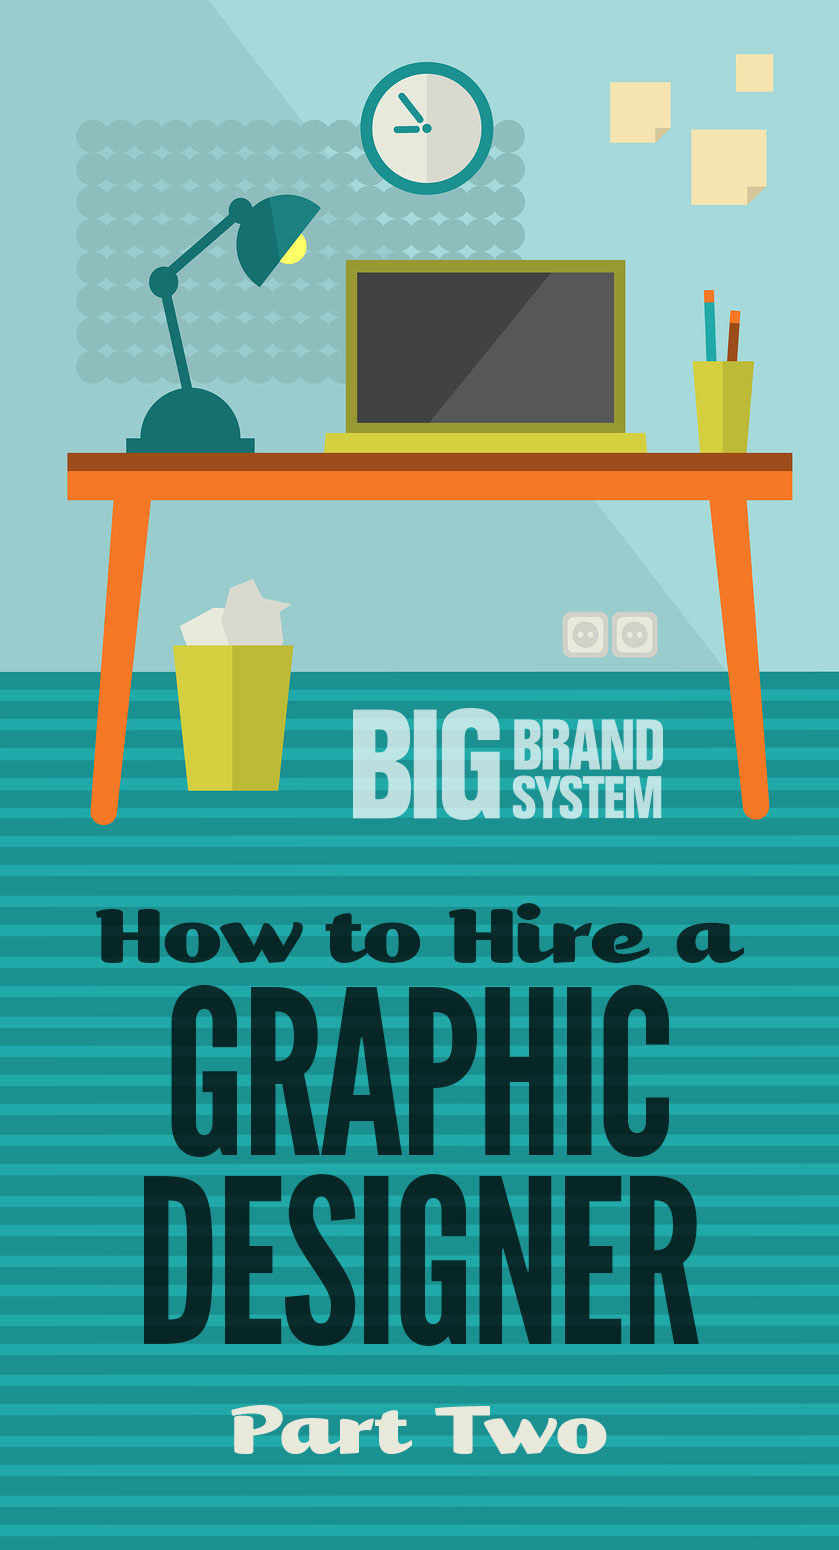 How-to-Hire-a-Graphic-Designer-2-vert.jpg